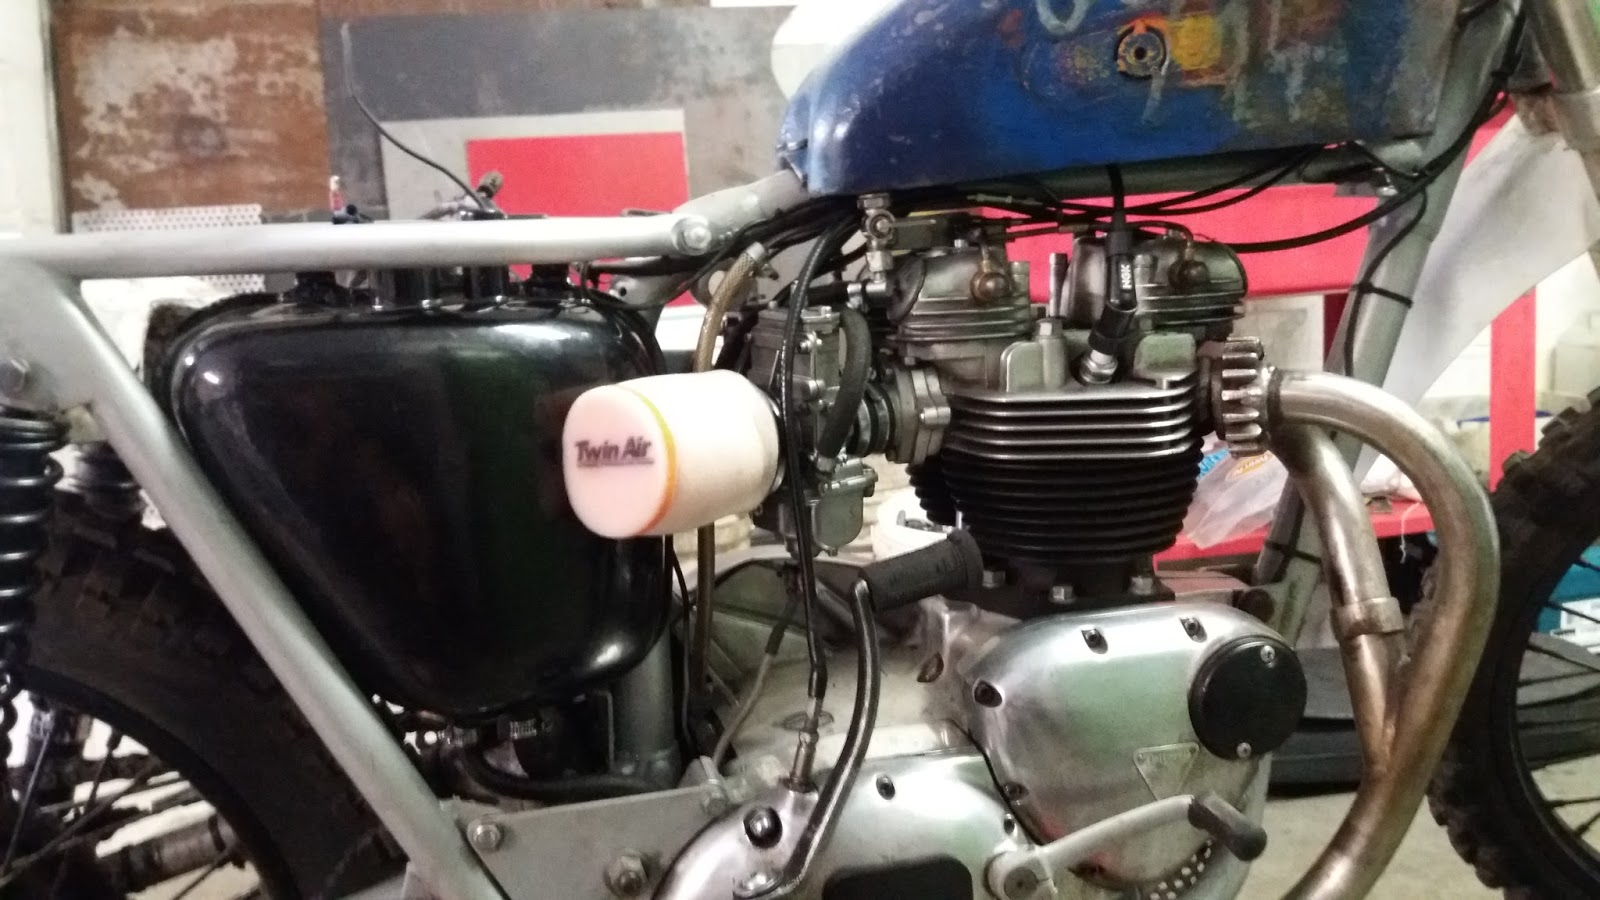 JTbrothers motorcycles: Double trouble means double solution